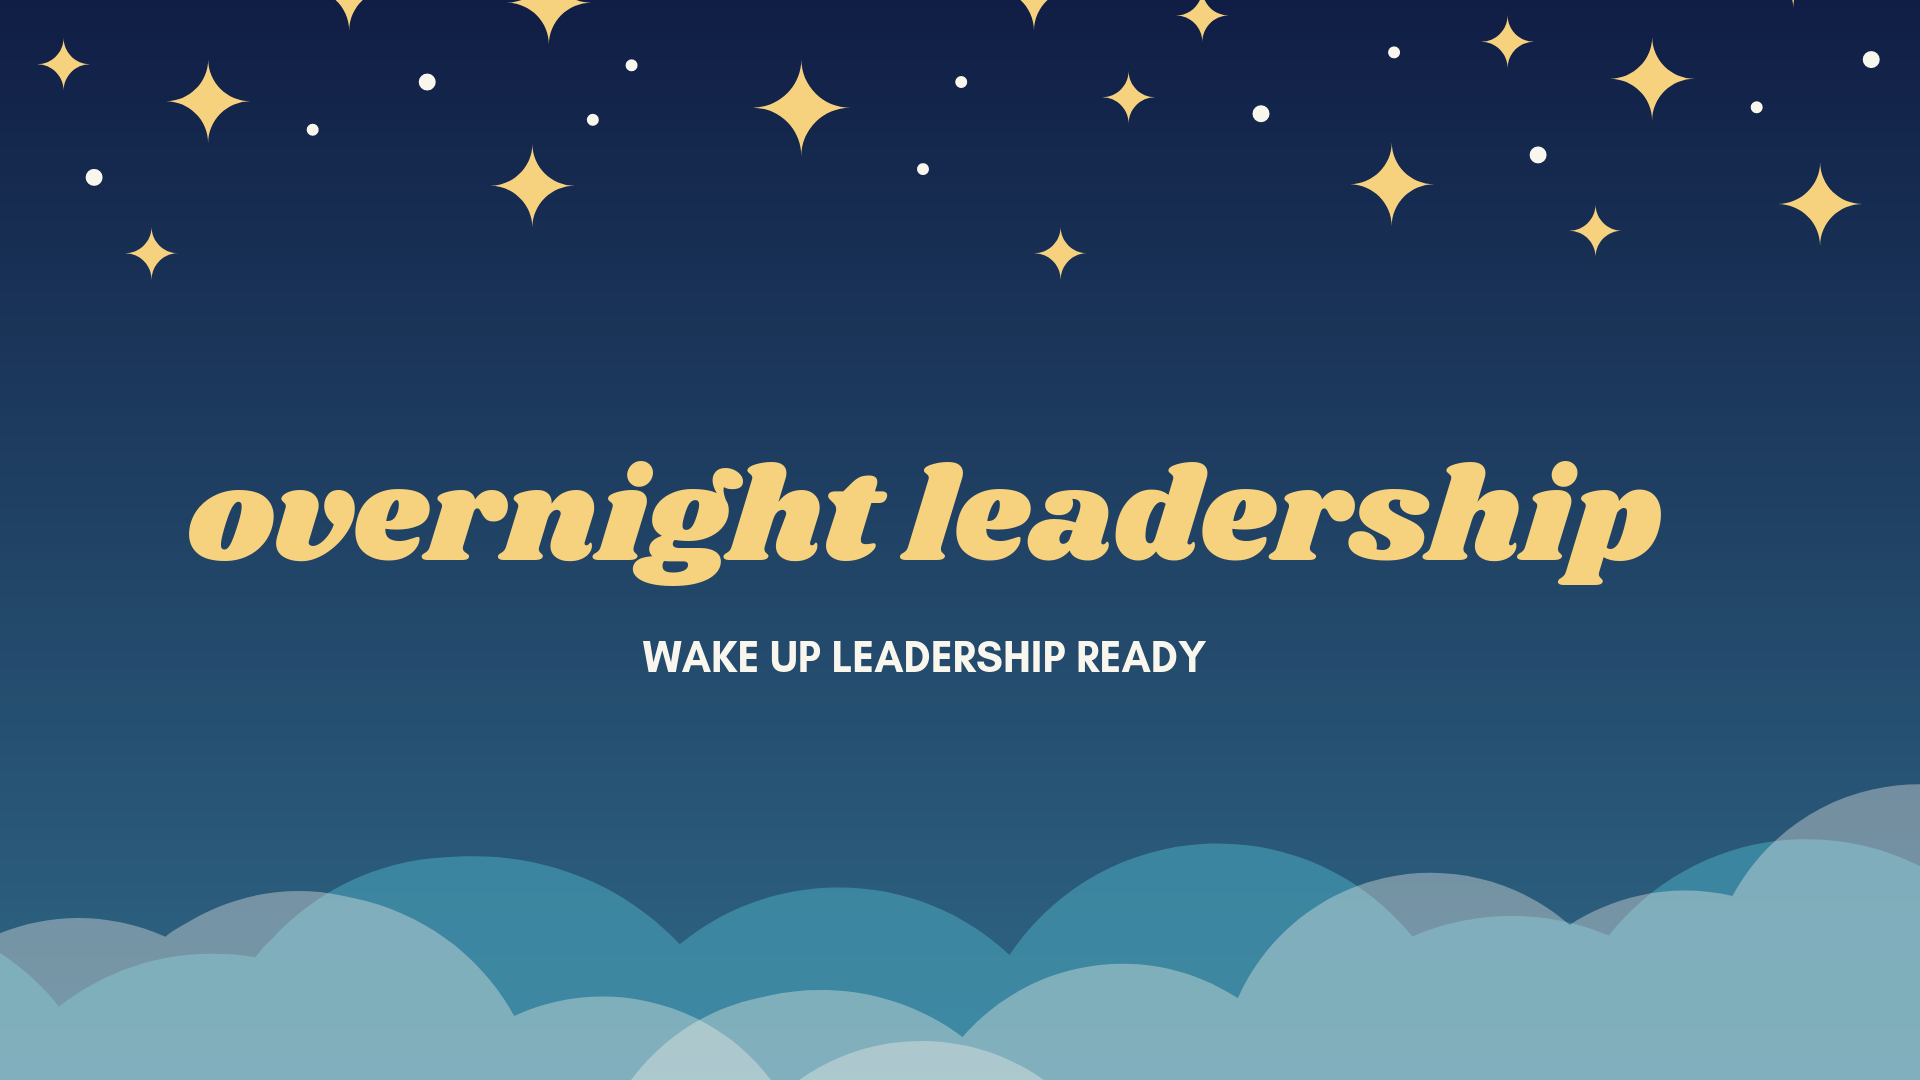 overnight leadership WAKE UP LEADERSHIP READY.png